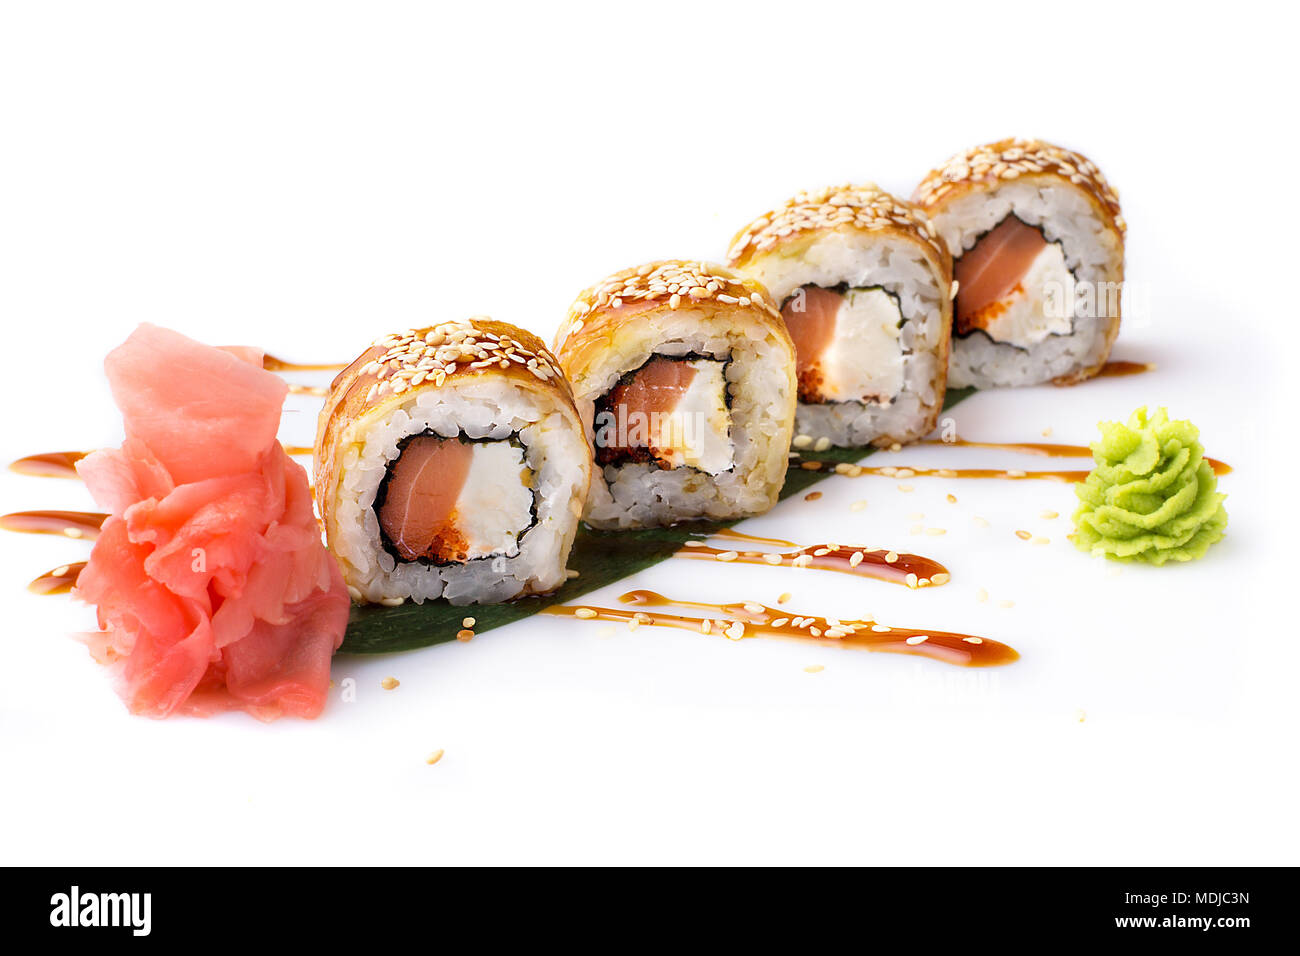 Appetizing and original sushi rolls with smoked salmon and Philadelphia cheese in an omelette laid out on a banana leaf. Isolated. Sushi roll on a whi Stock Photo